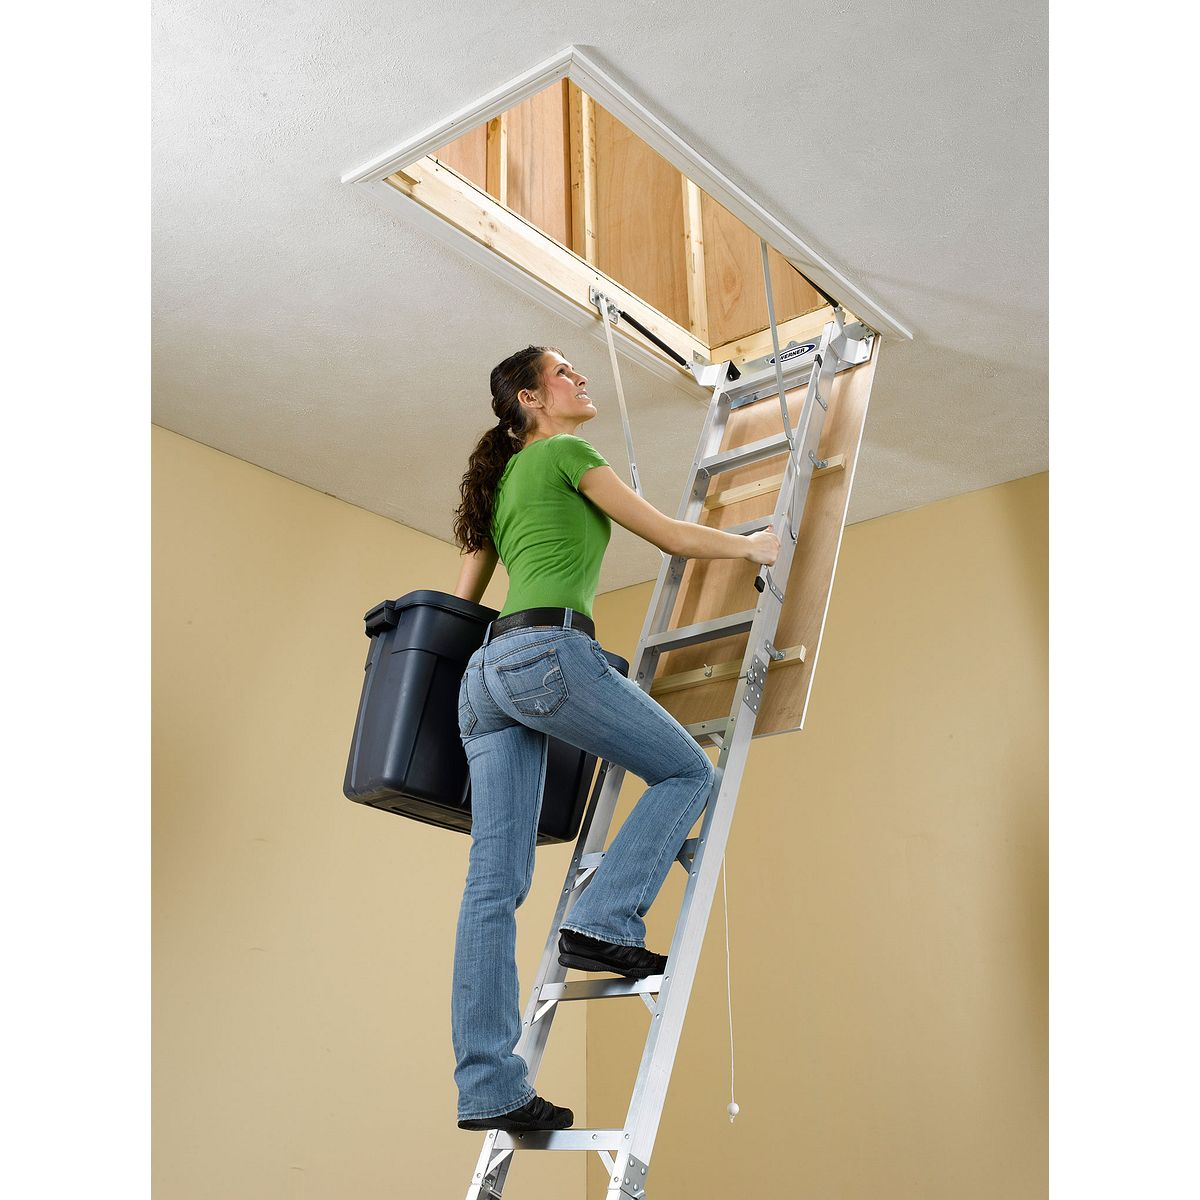 Ah2210 Attic Ladders Werner Us